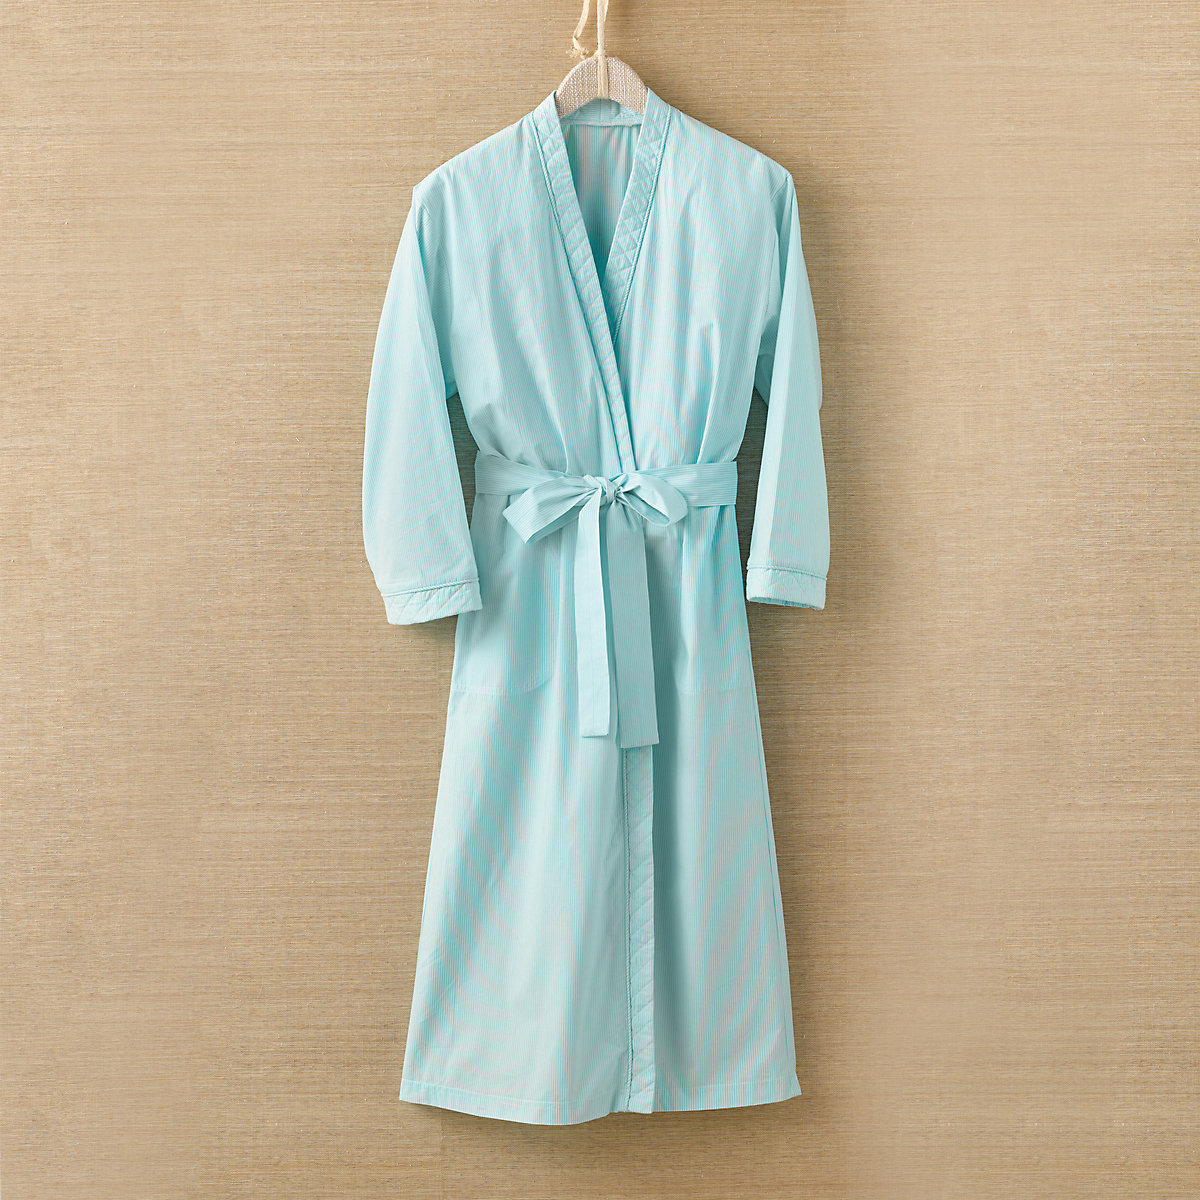 Diamond Tea Aqua Striped Robe